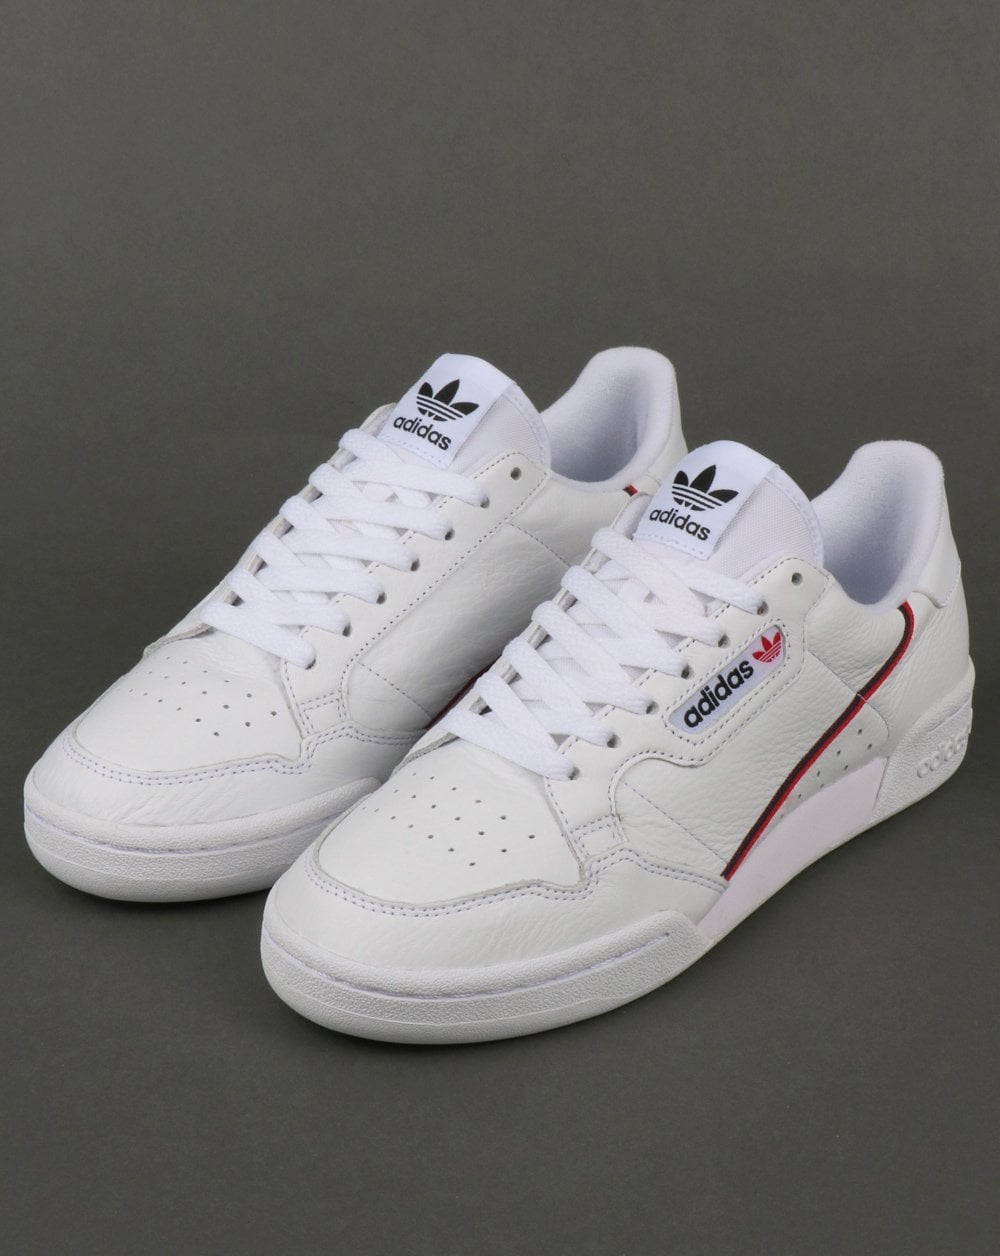 best loved 79370 71005 ... new arrivals adidas continental 80 trainers white red navy ba4f7 742c6